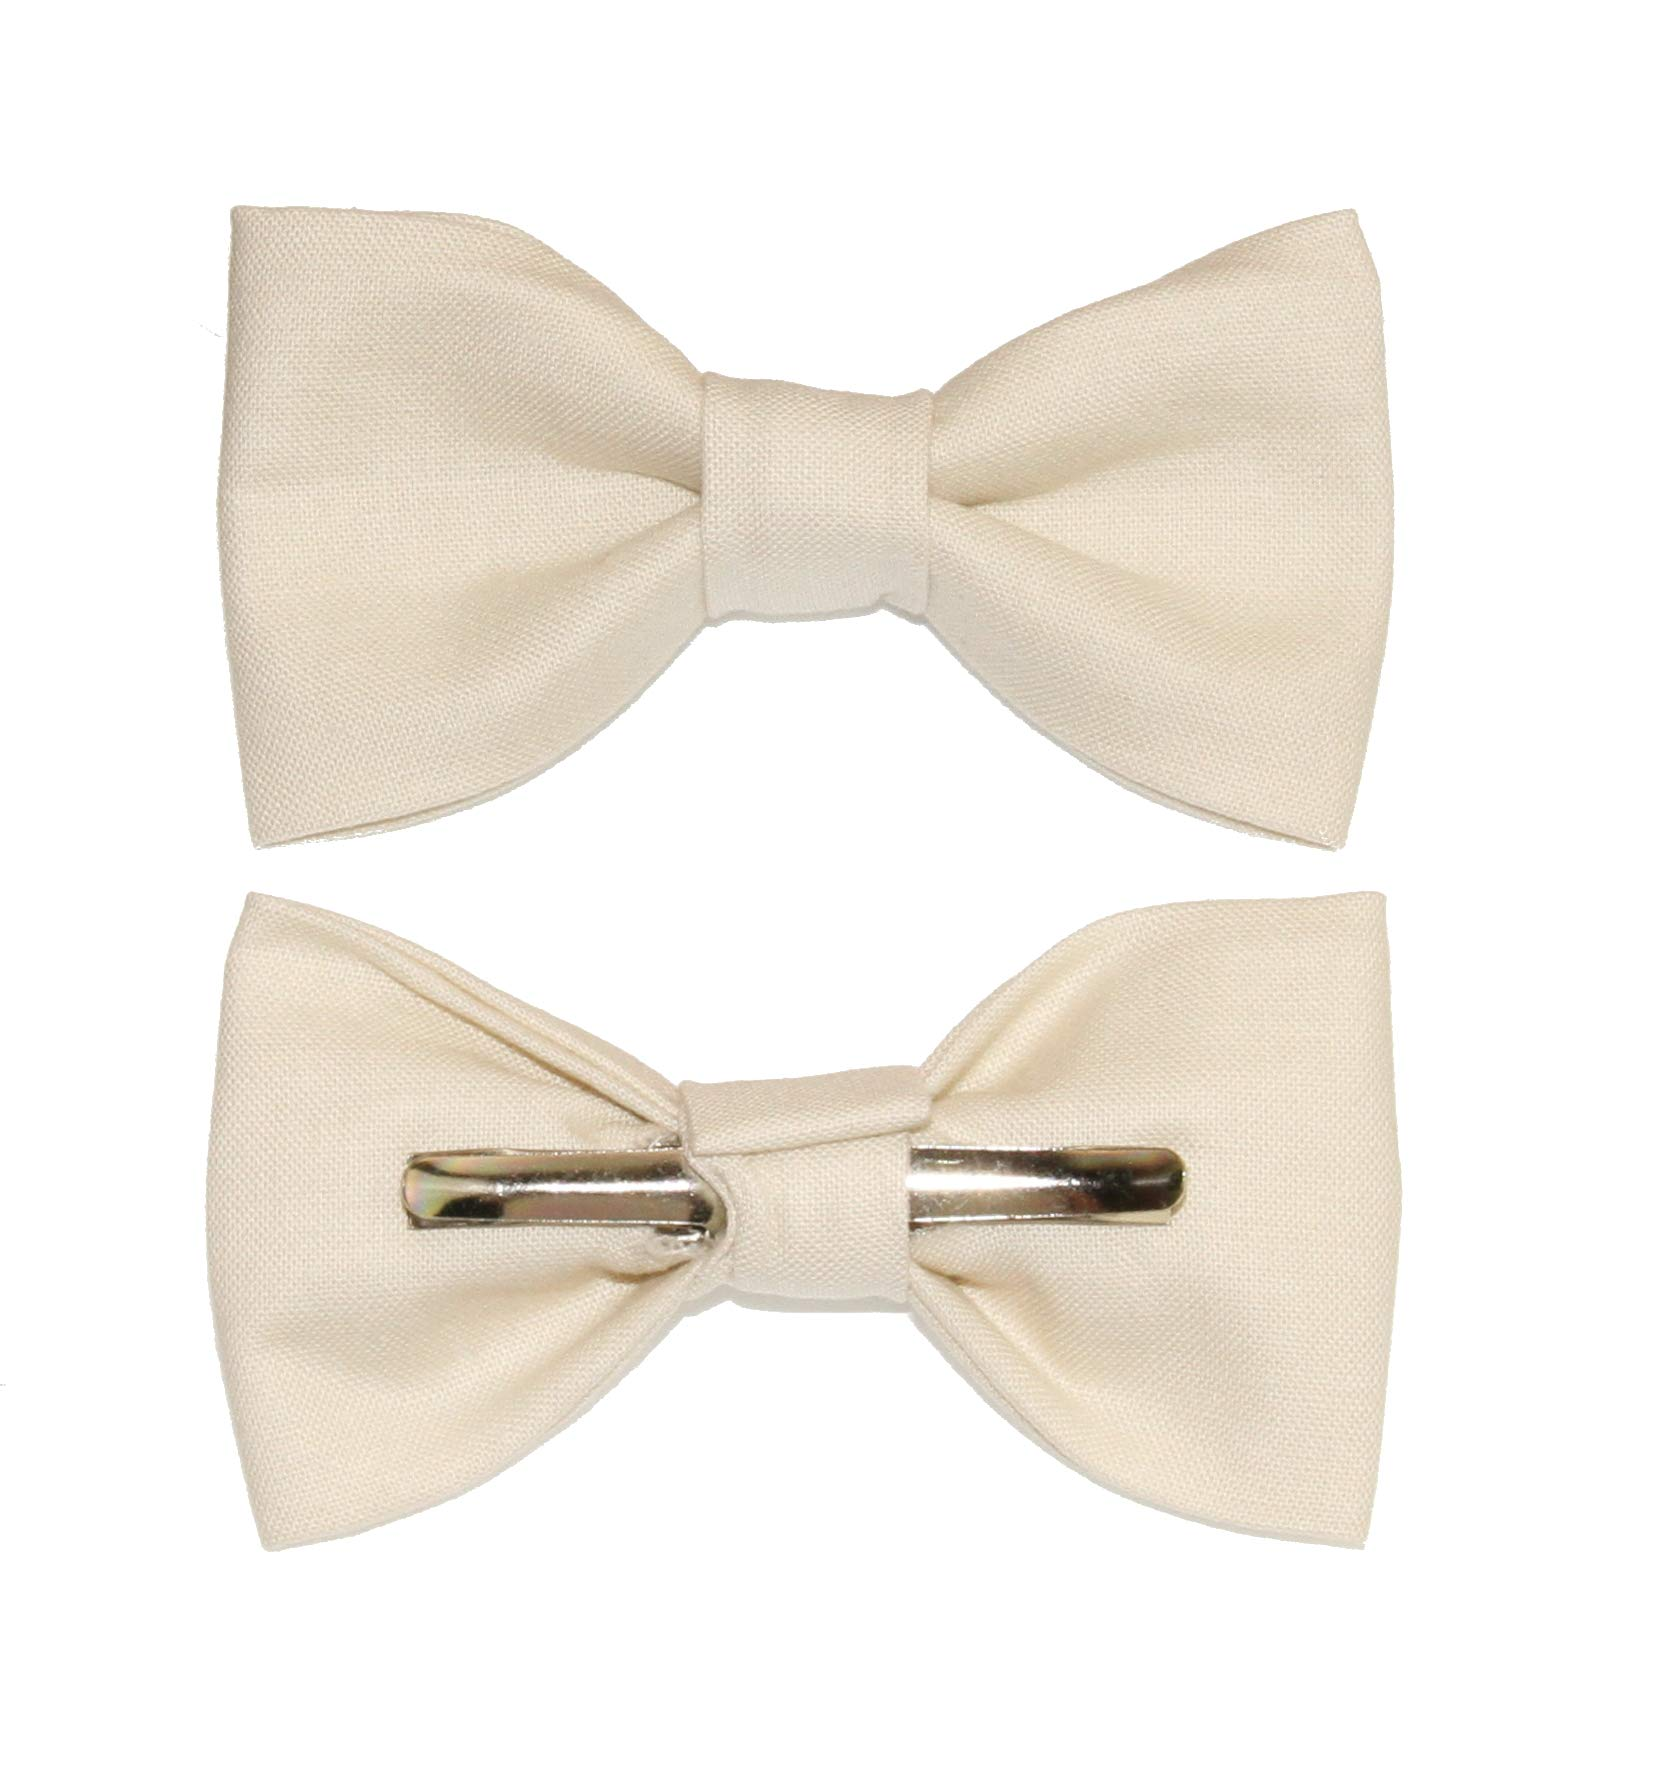 Toddler Boy 4T 5T Ivory Clip On Cotton Bow Tie Bowtie